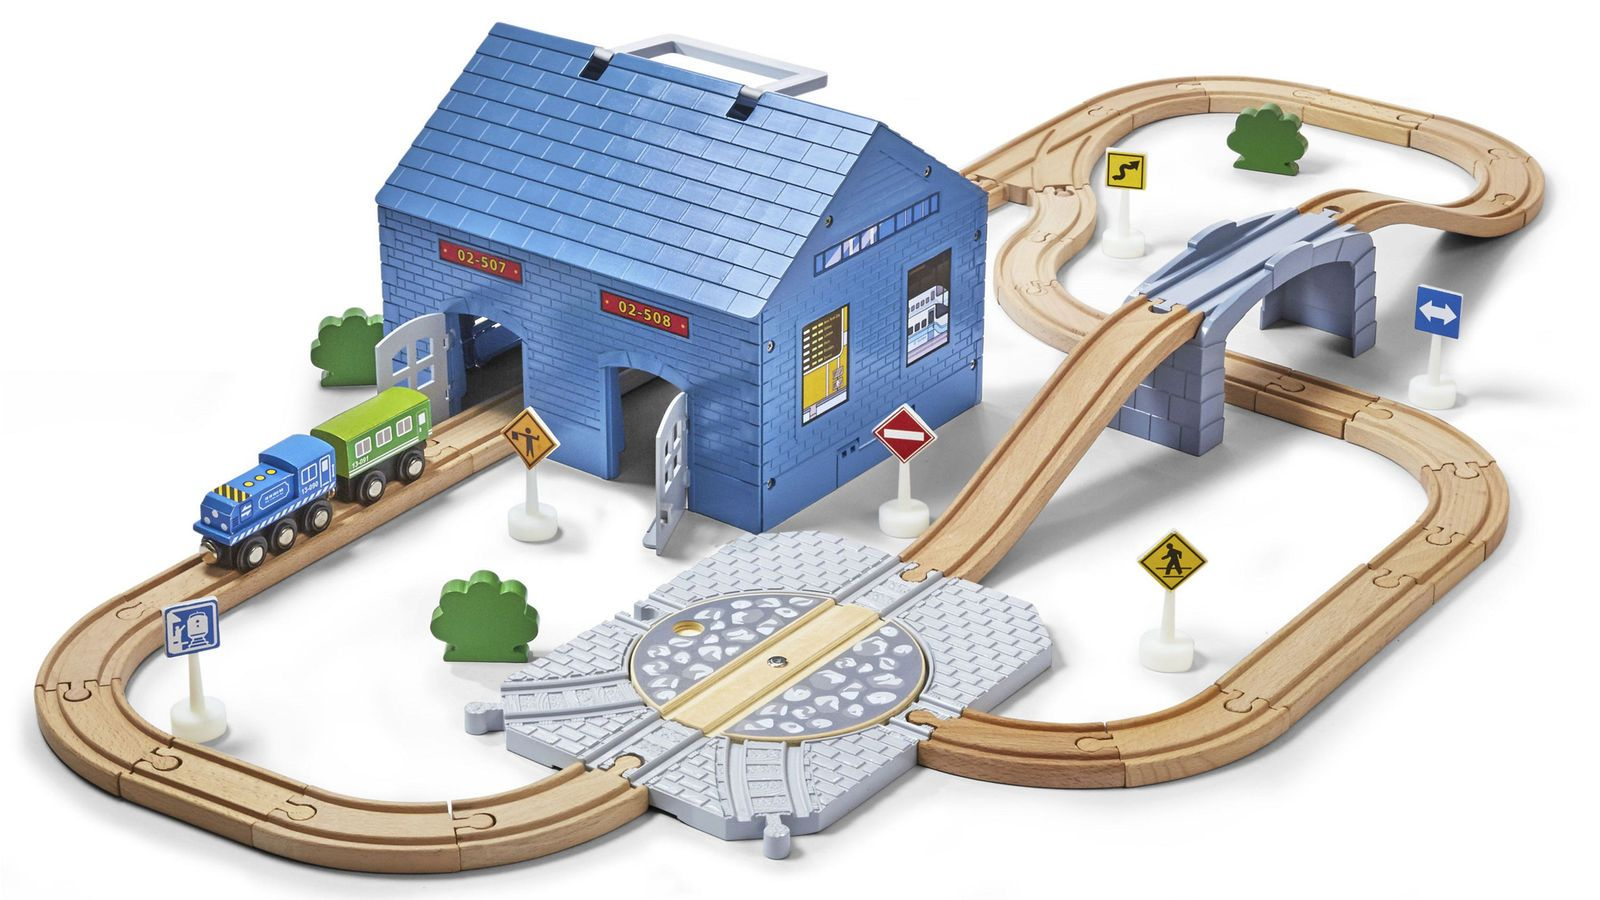 Imaginarium Express Turntable Train Set